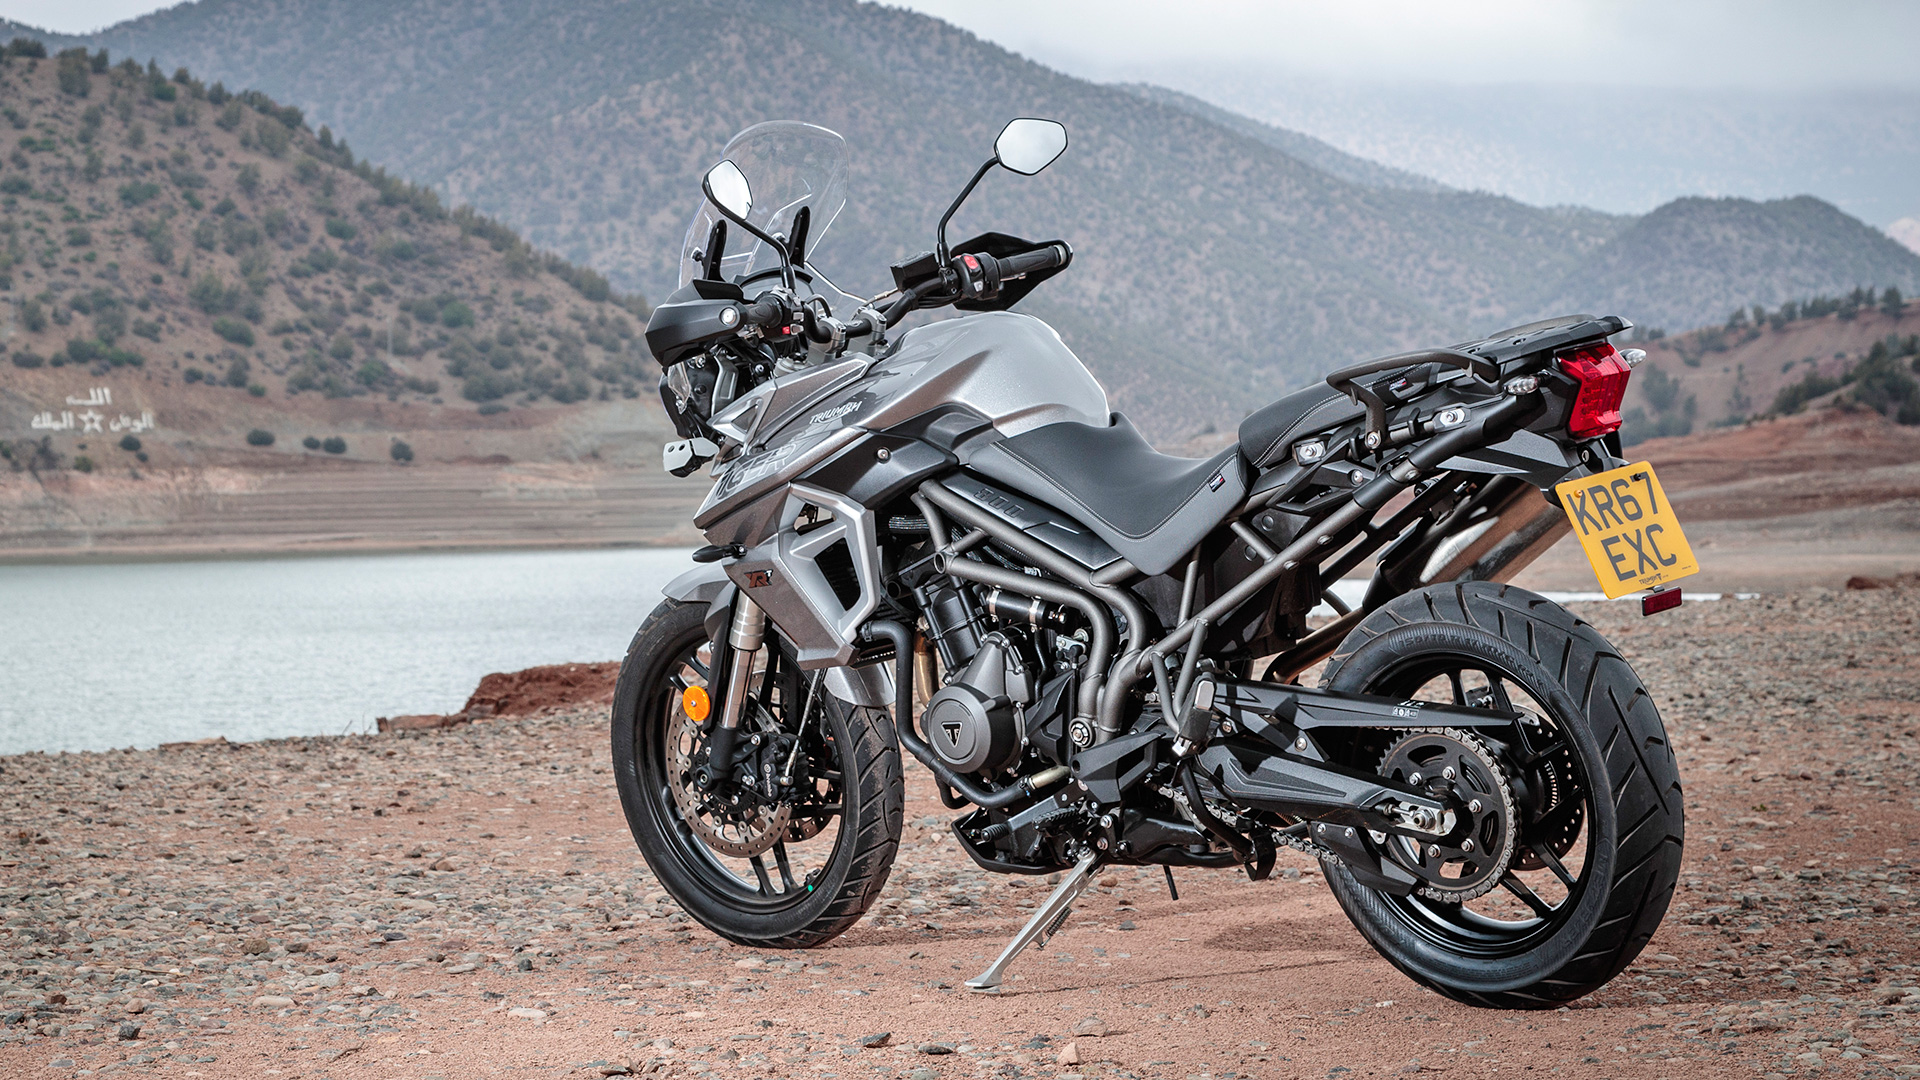 Triumph Tiger 800 2018 Xca Bike Photos Overdrive